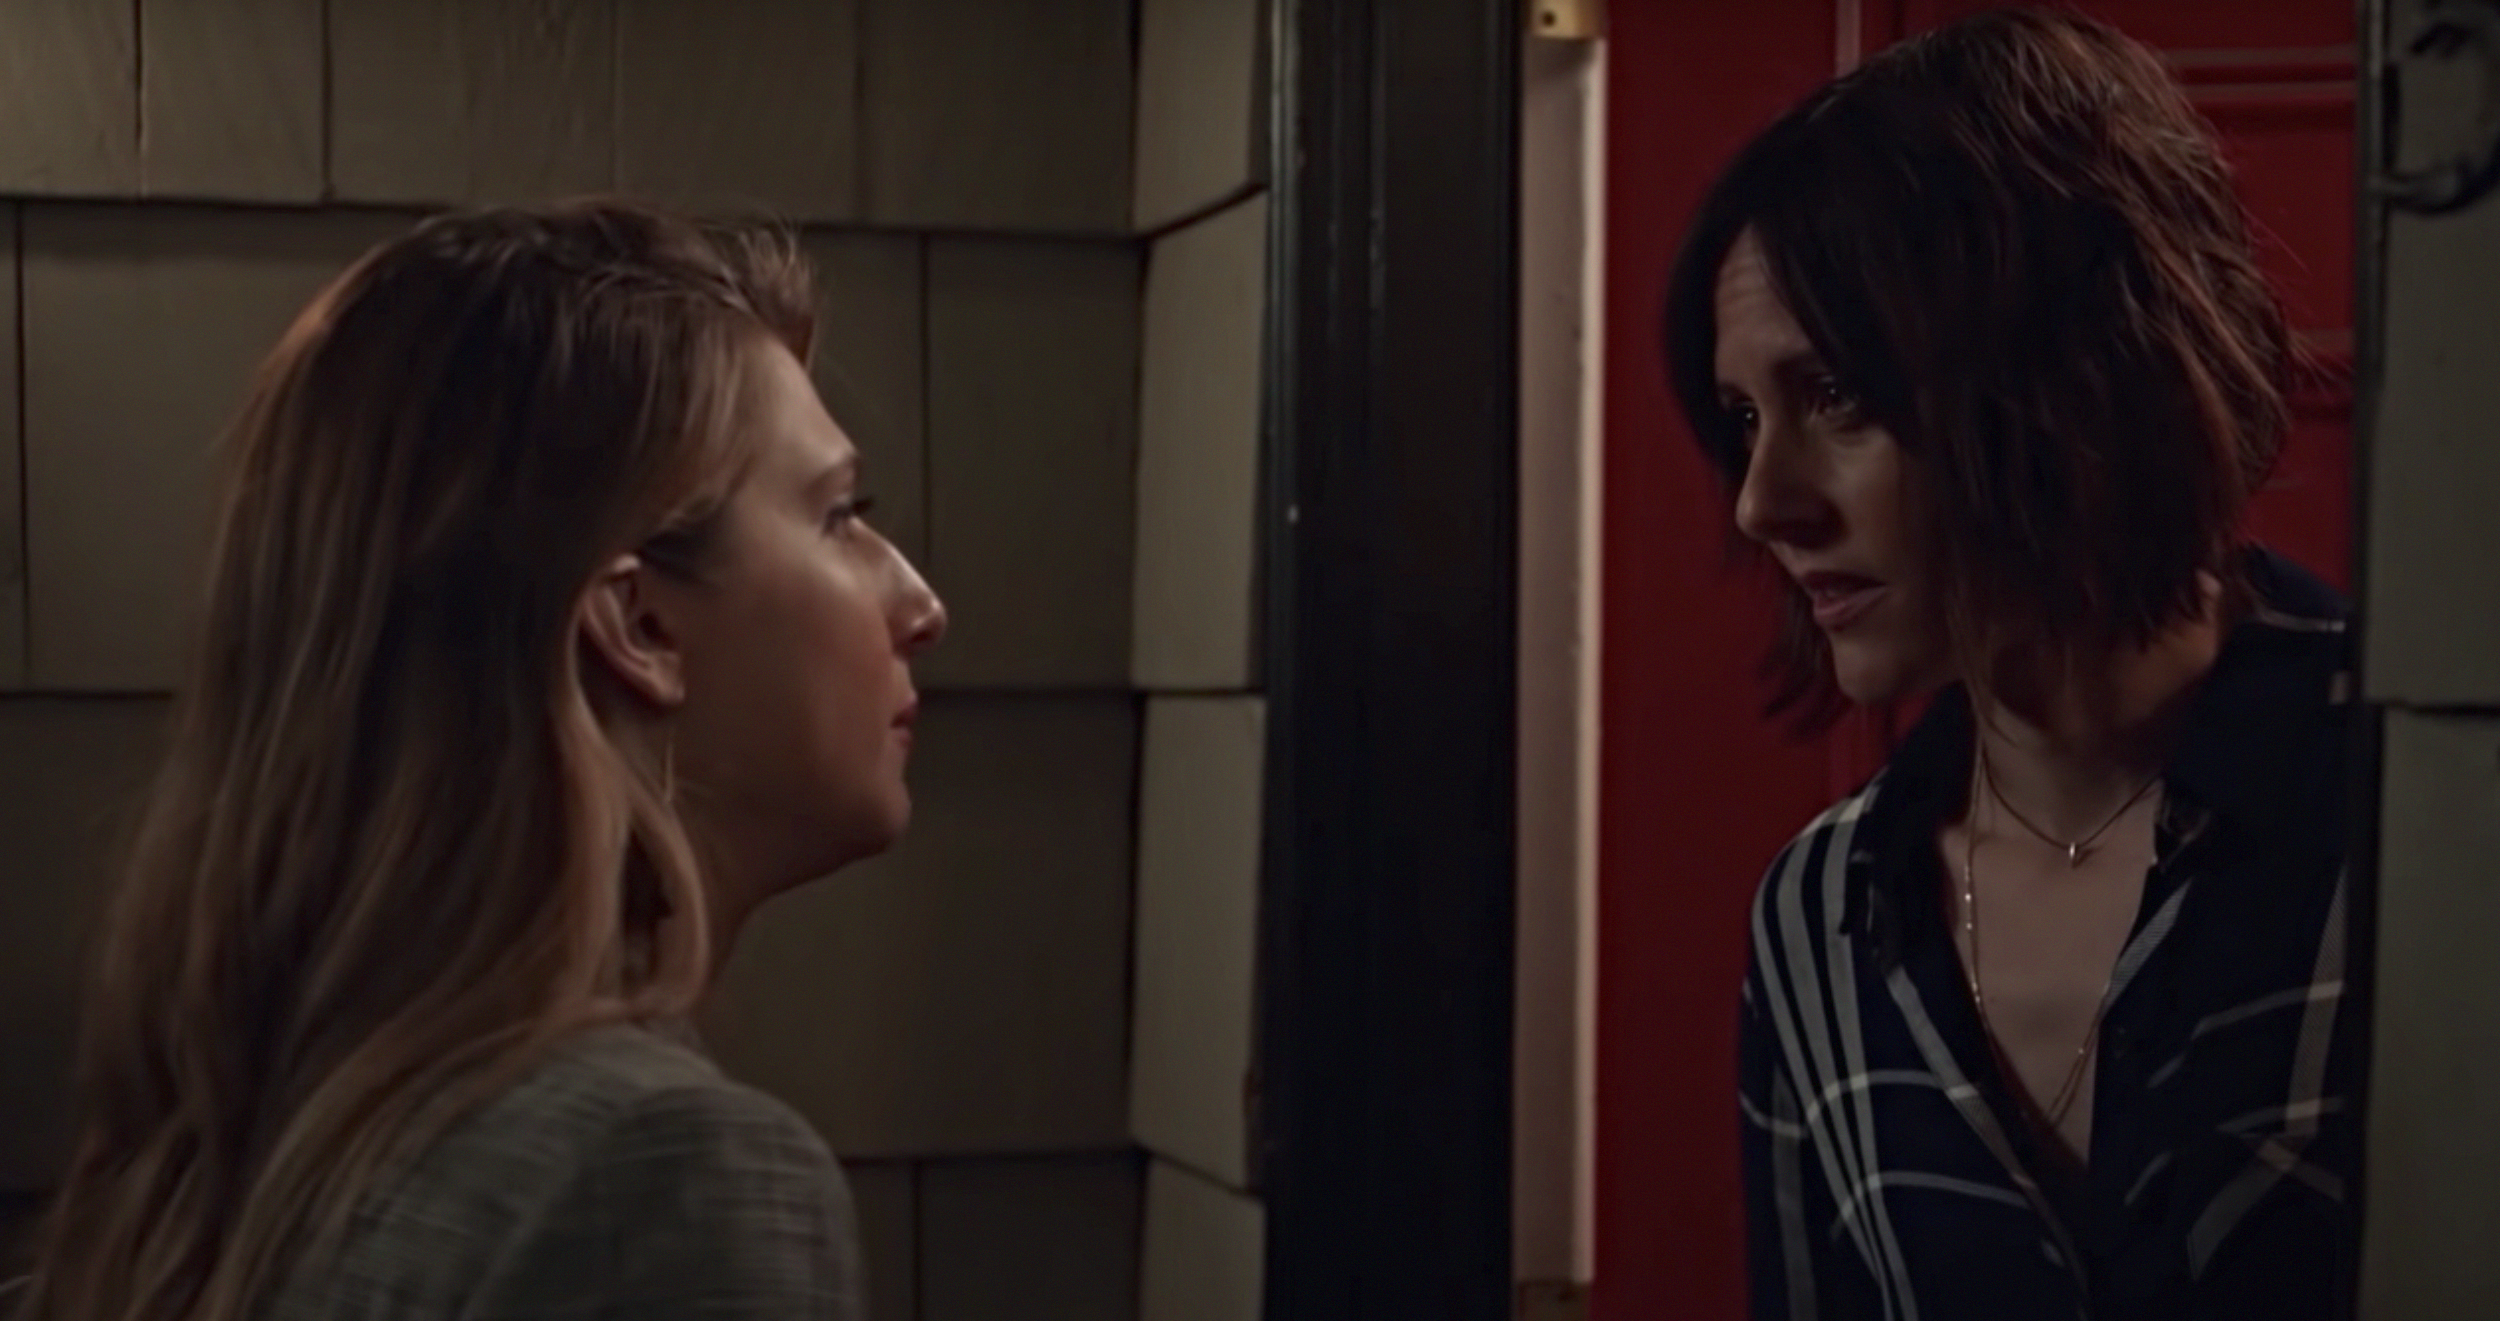 Nomi, played by Emily Arlook, a white college student with blond hair, left, and Professor Hewson, played by Katherine Moennig, a white woman with dark, short hair, on Grown-ish